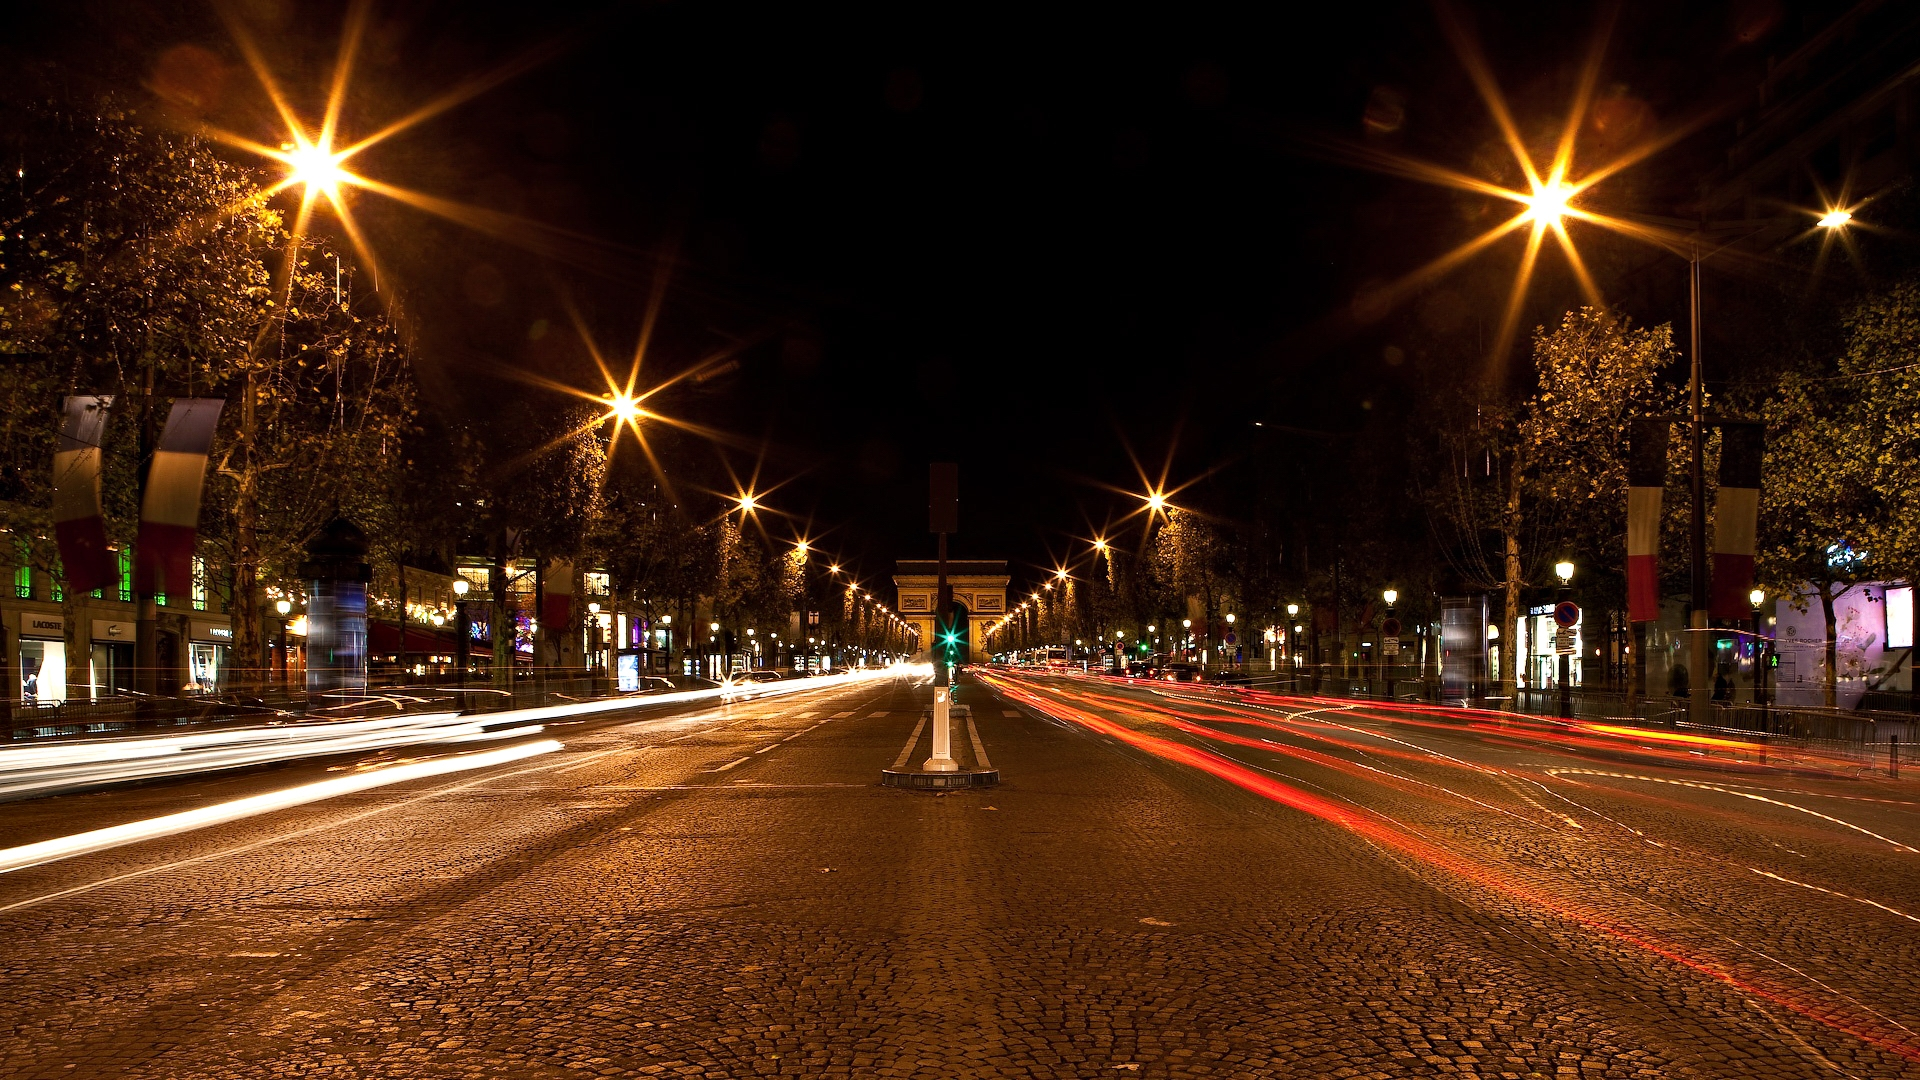 Download Wallpaper Night City Street - germany_street_gates_night_city_lights_10420_1920x1080  You Should Have.jpg